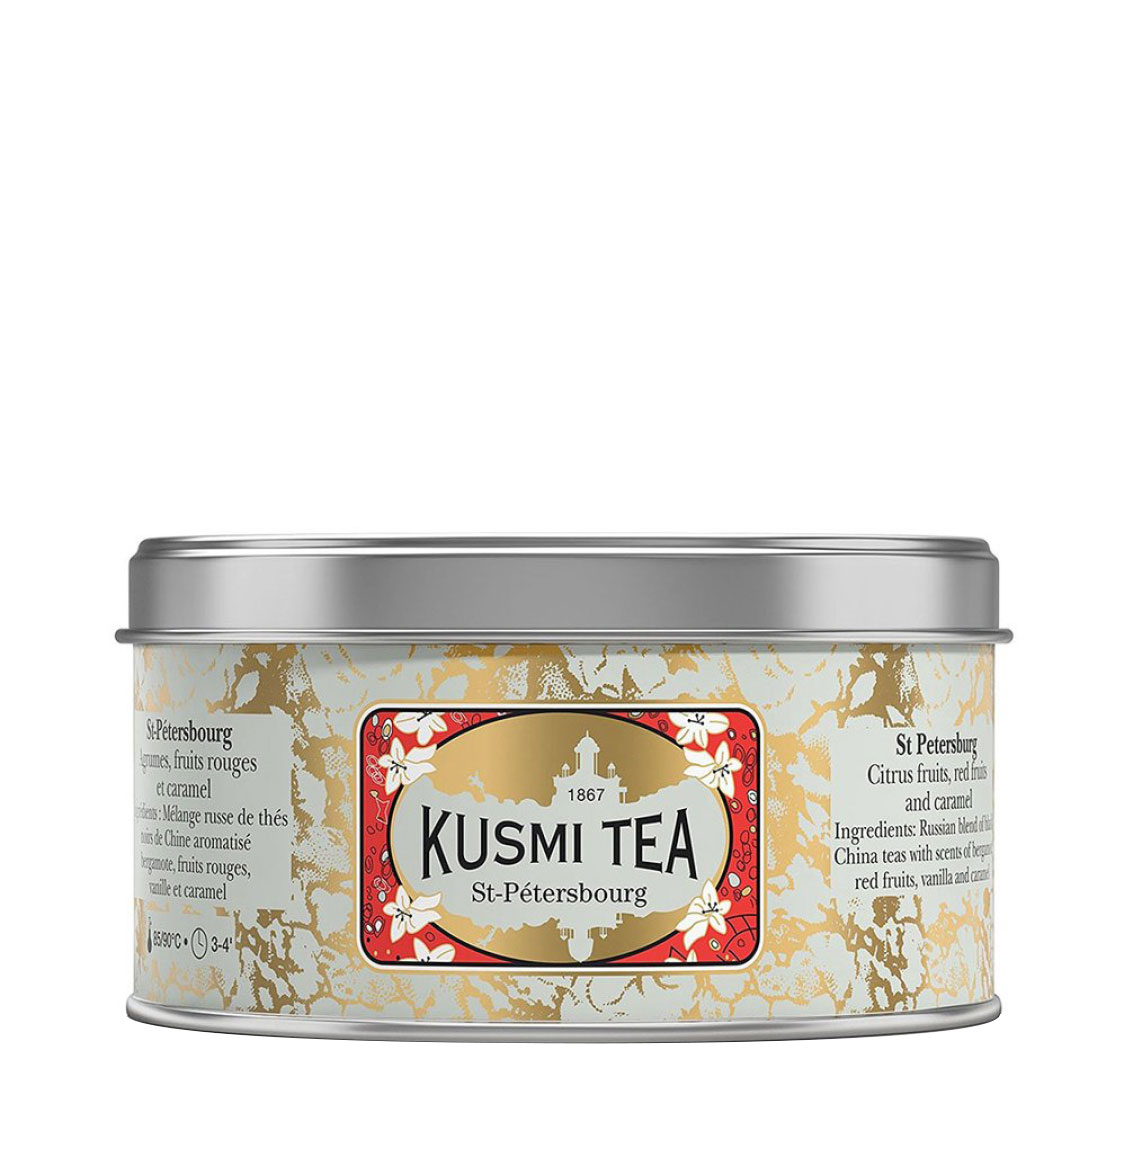 Kusmi Tea St Petersburg Exclusive Blend 125g